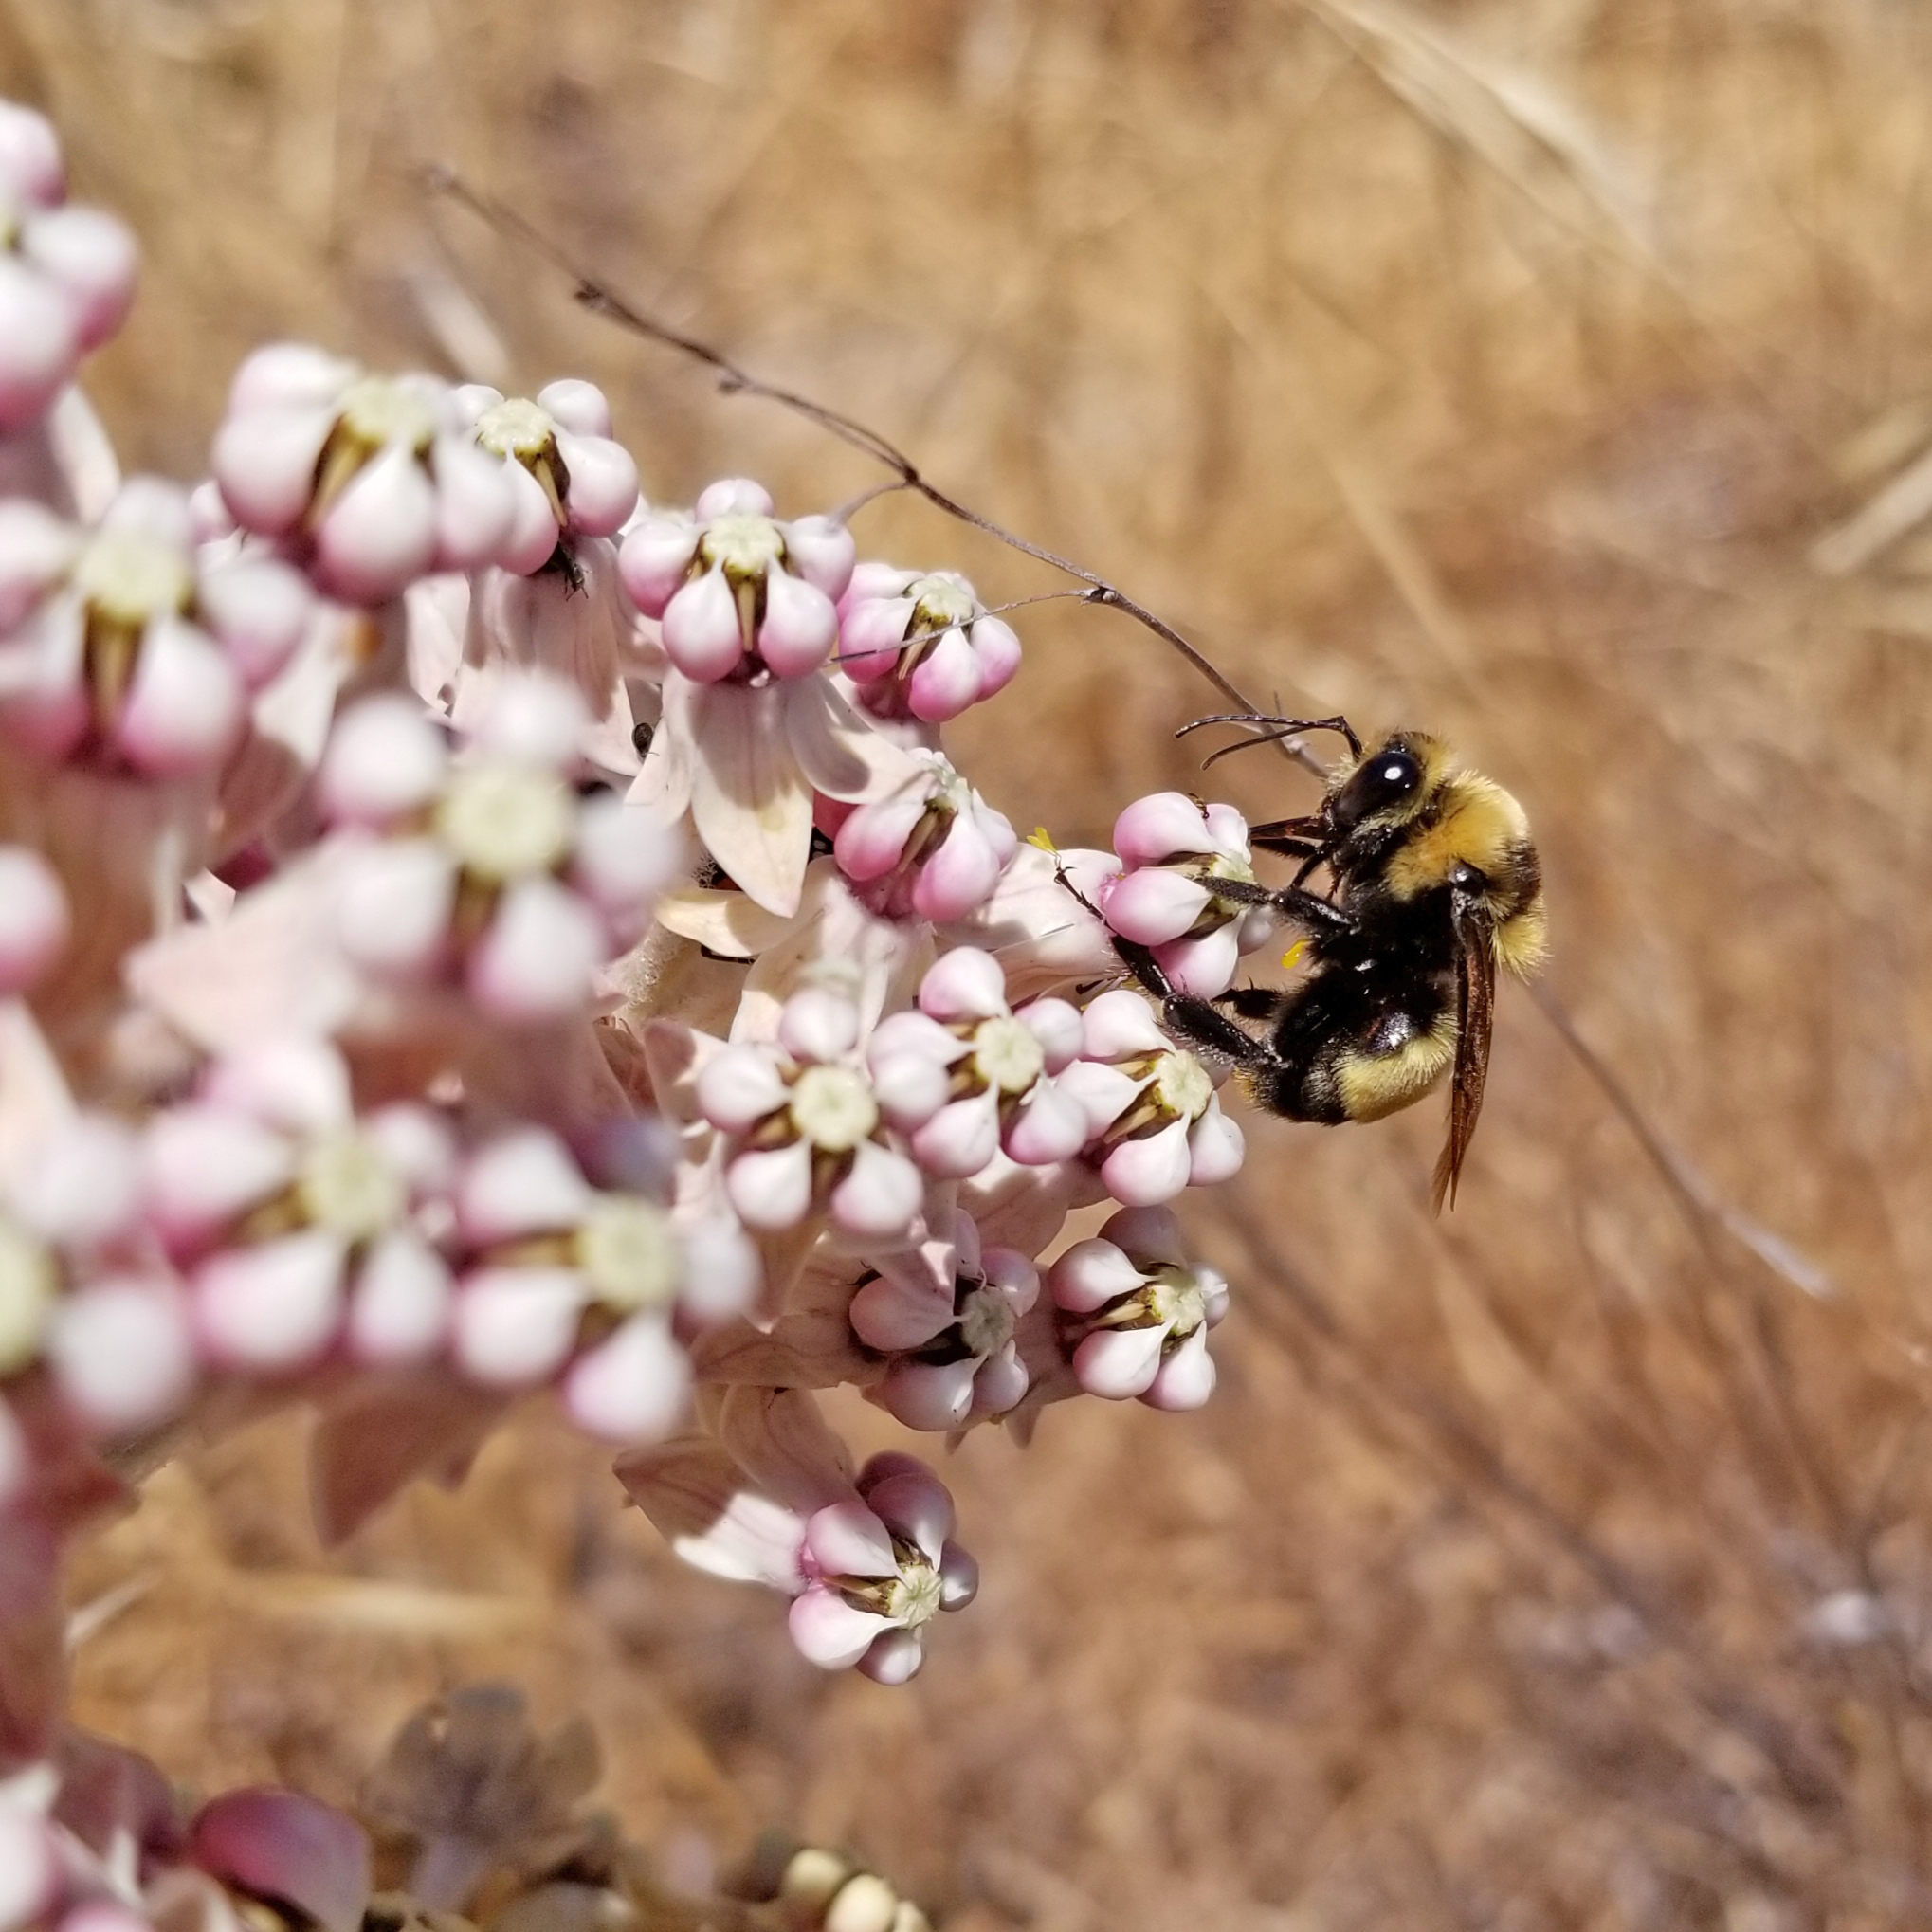 A bumble bee sits on a pale pink flower against a background of dry brush.